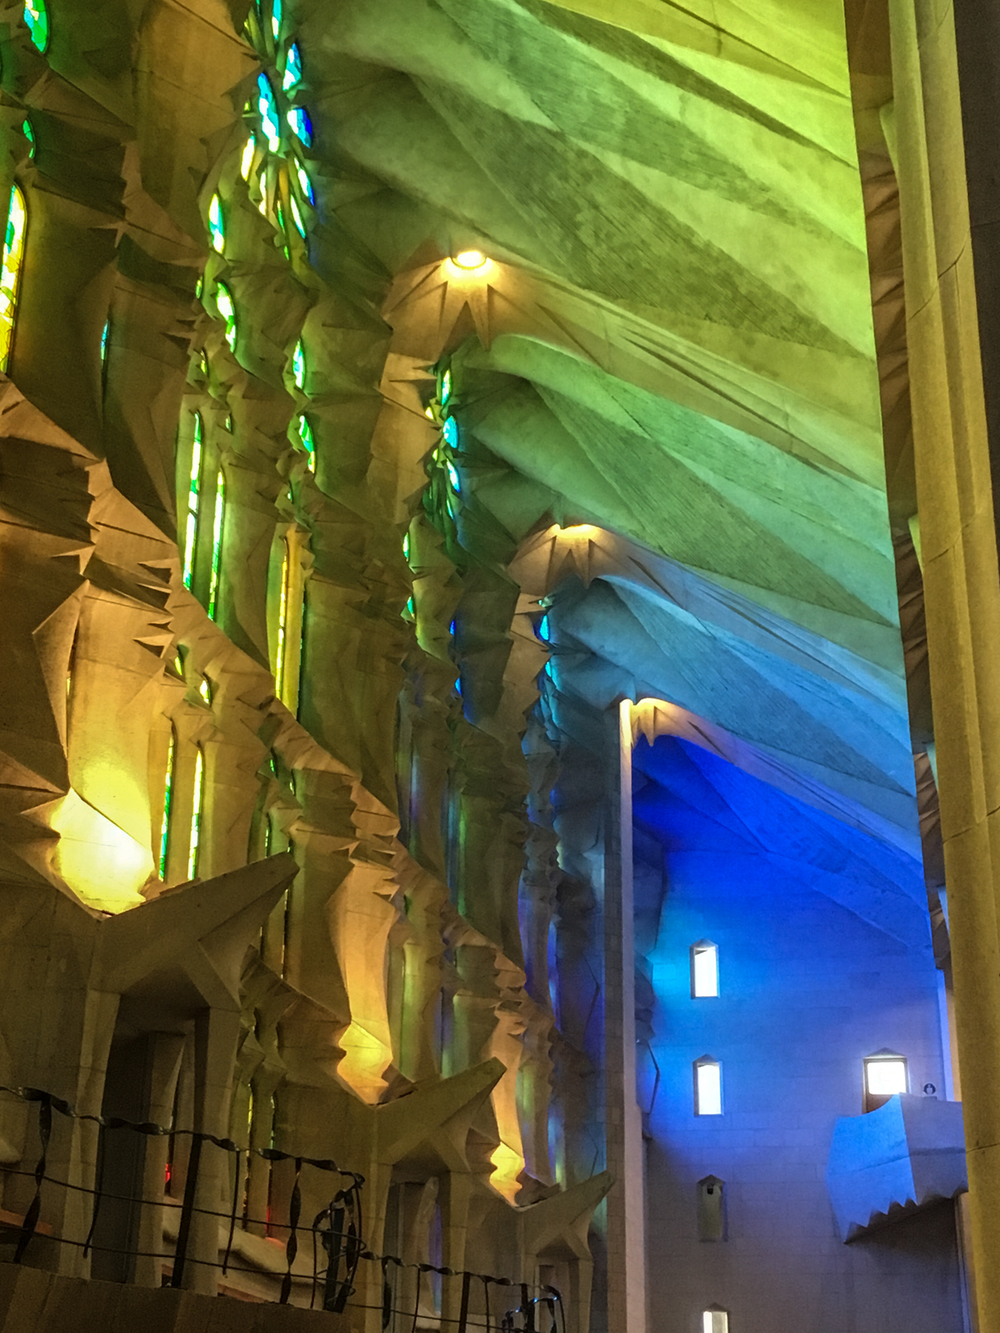 Stained glass light in the Sagrada Familia